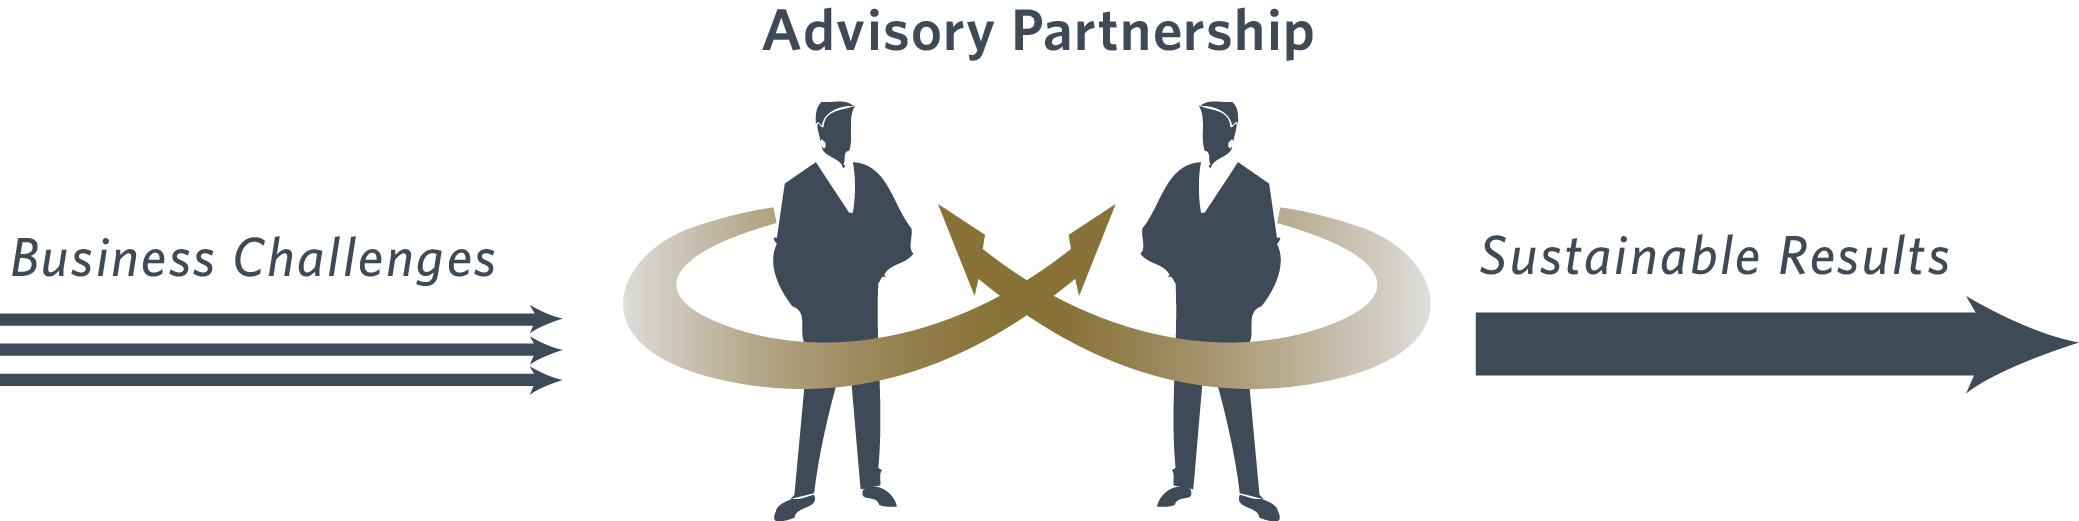 Advisory Partnership Image